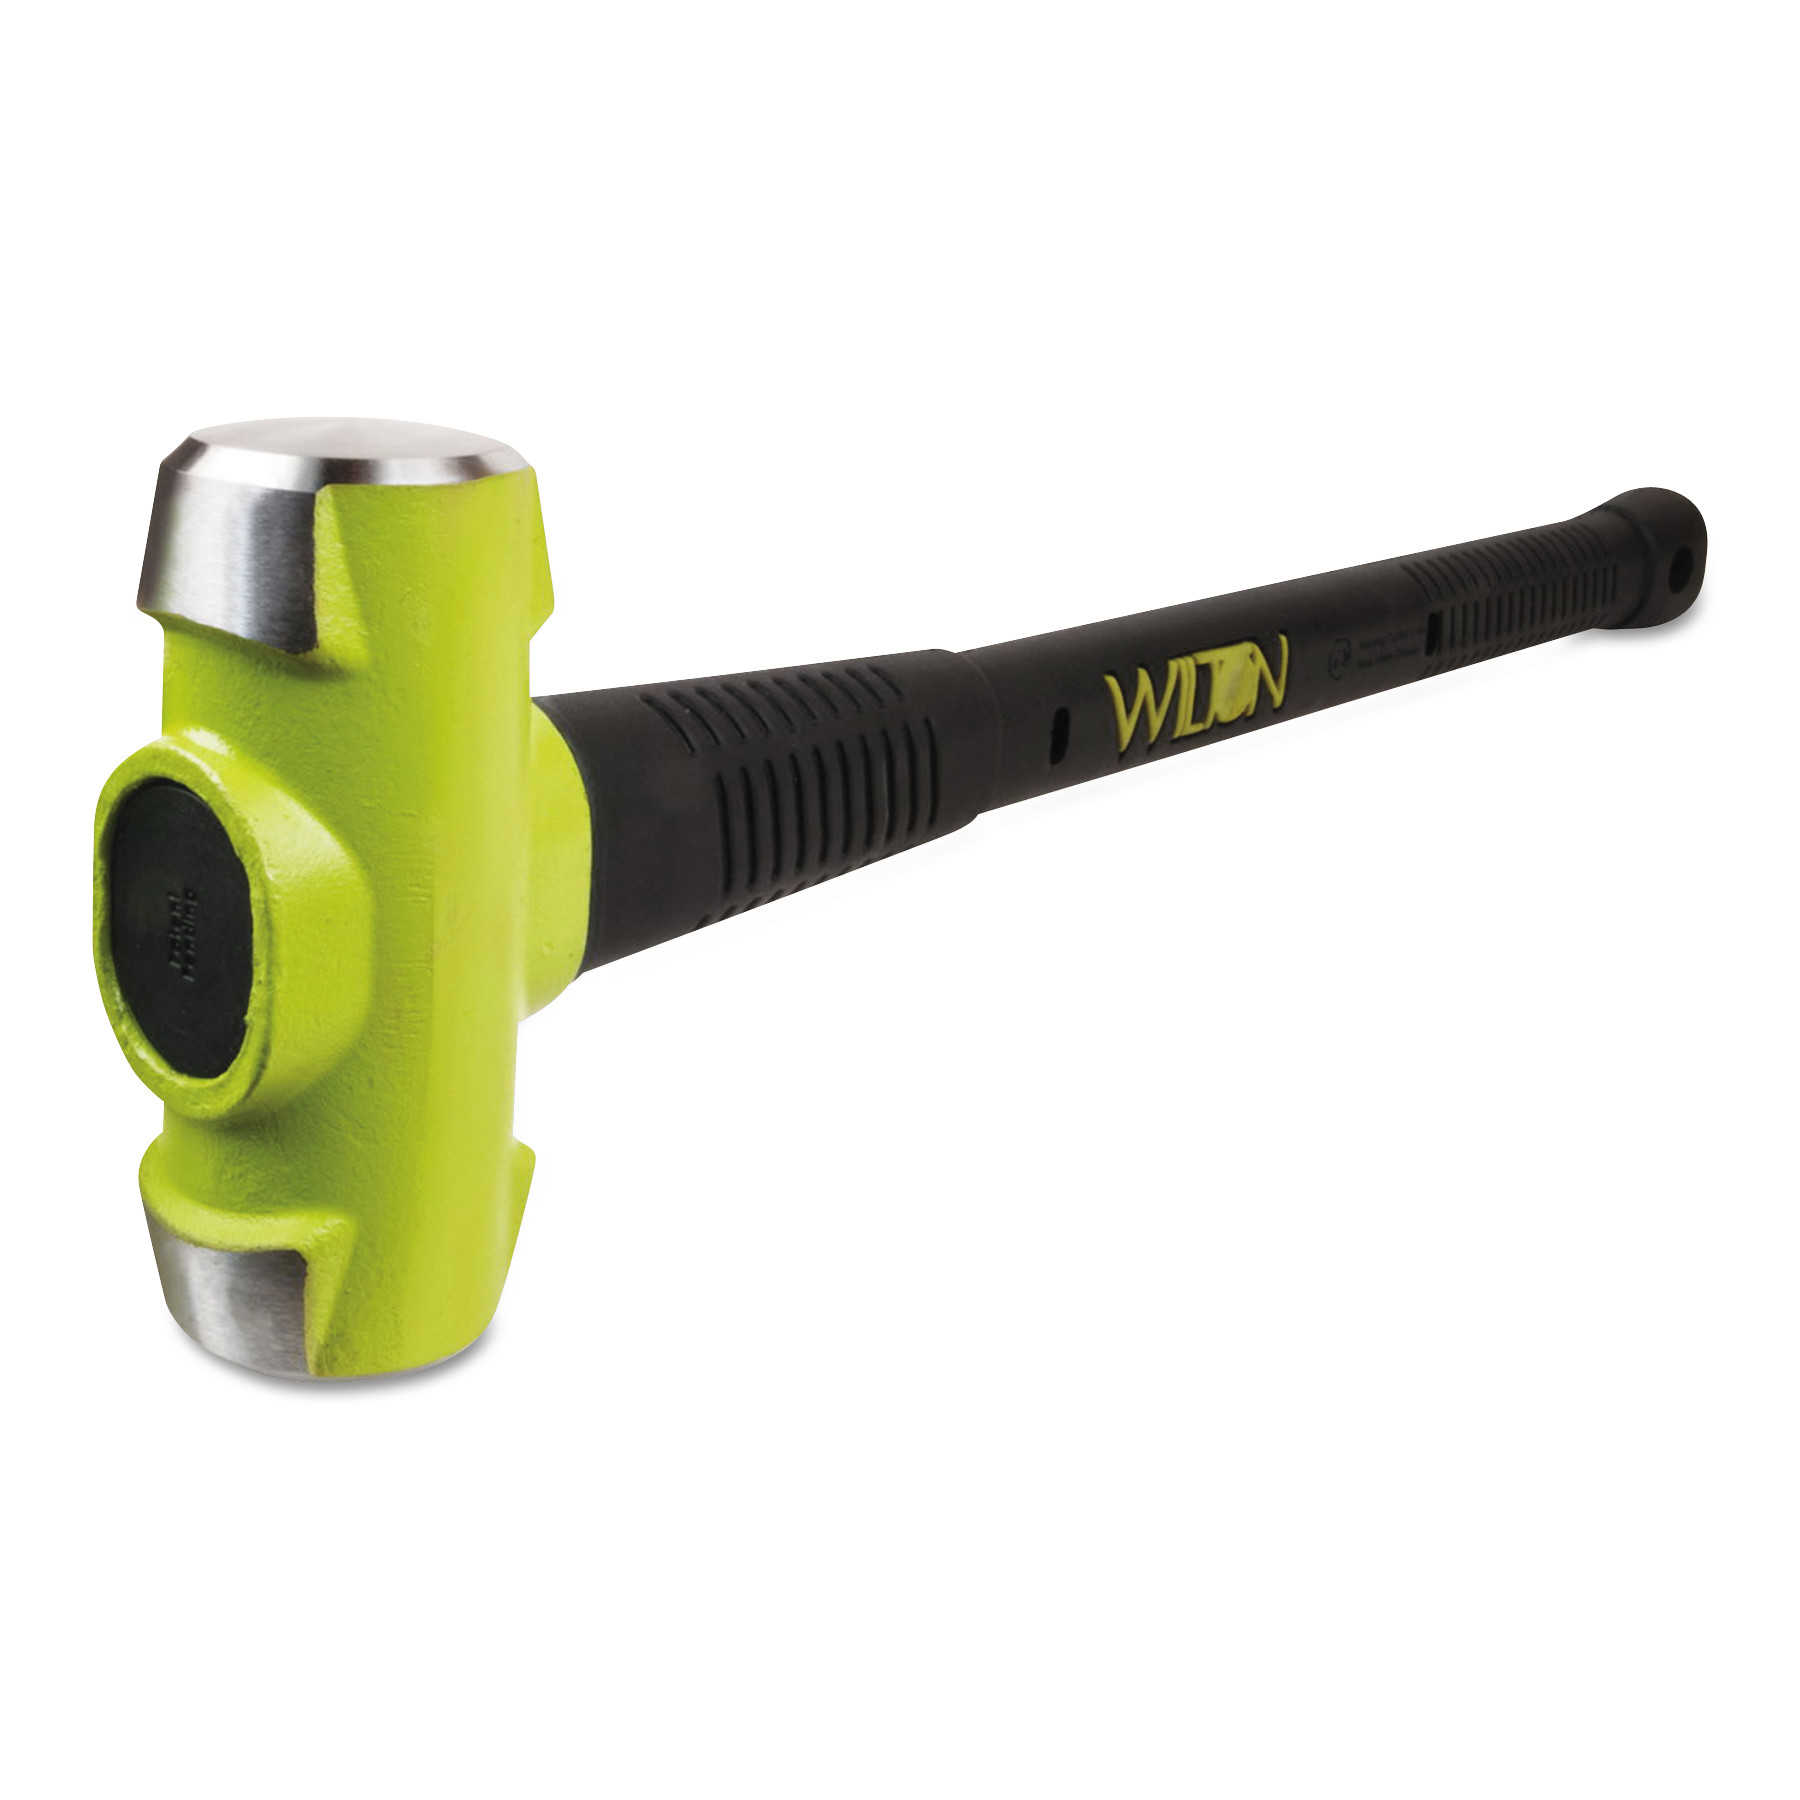 Wilton B.A.S.H Unbreakable Handle Sledge Hammer, 10 lb Head, 24 in Ergonomic Handle